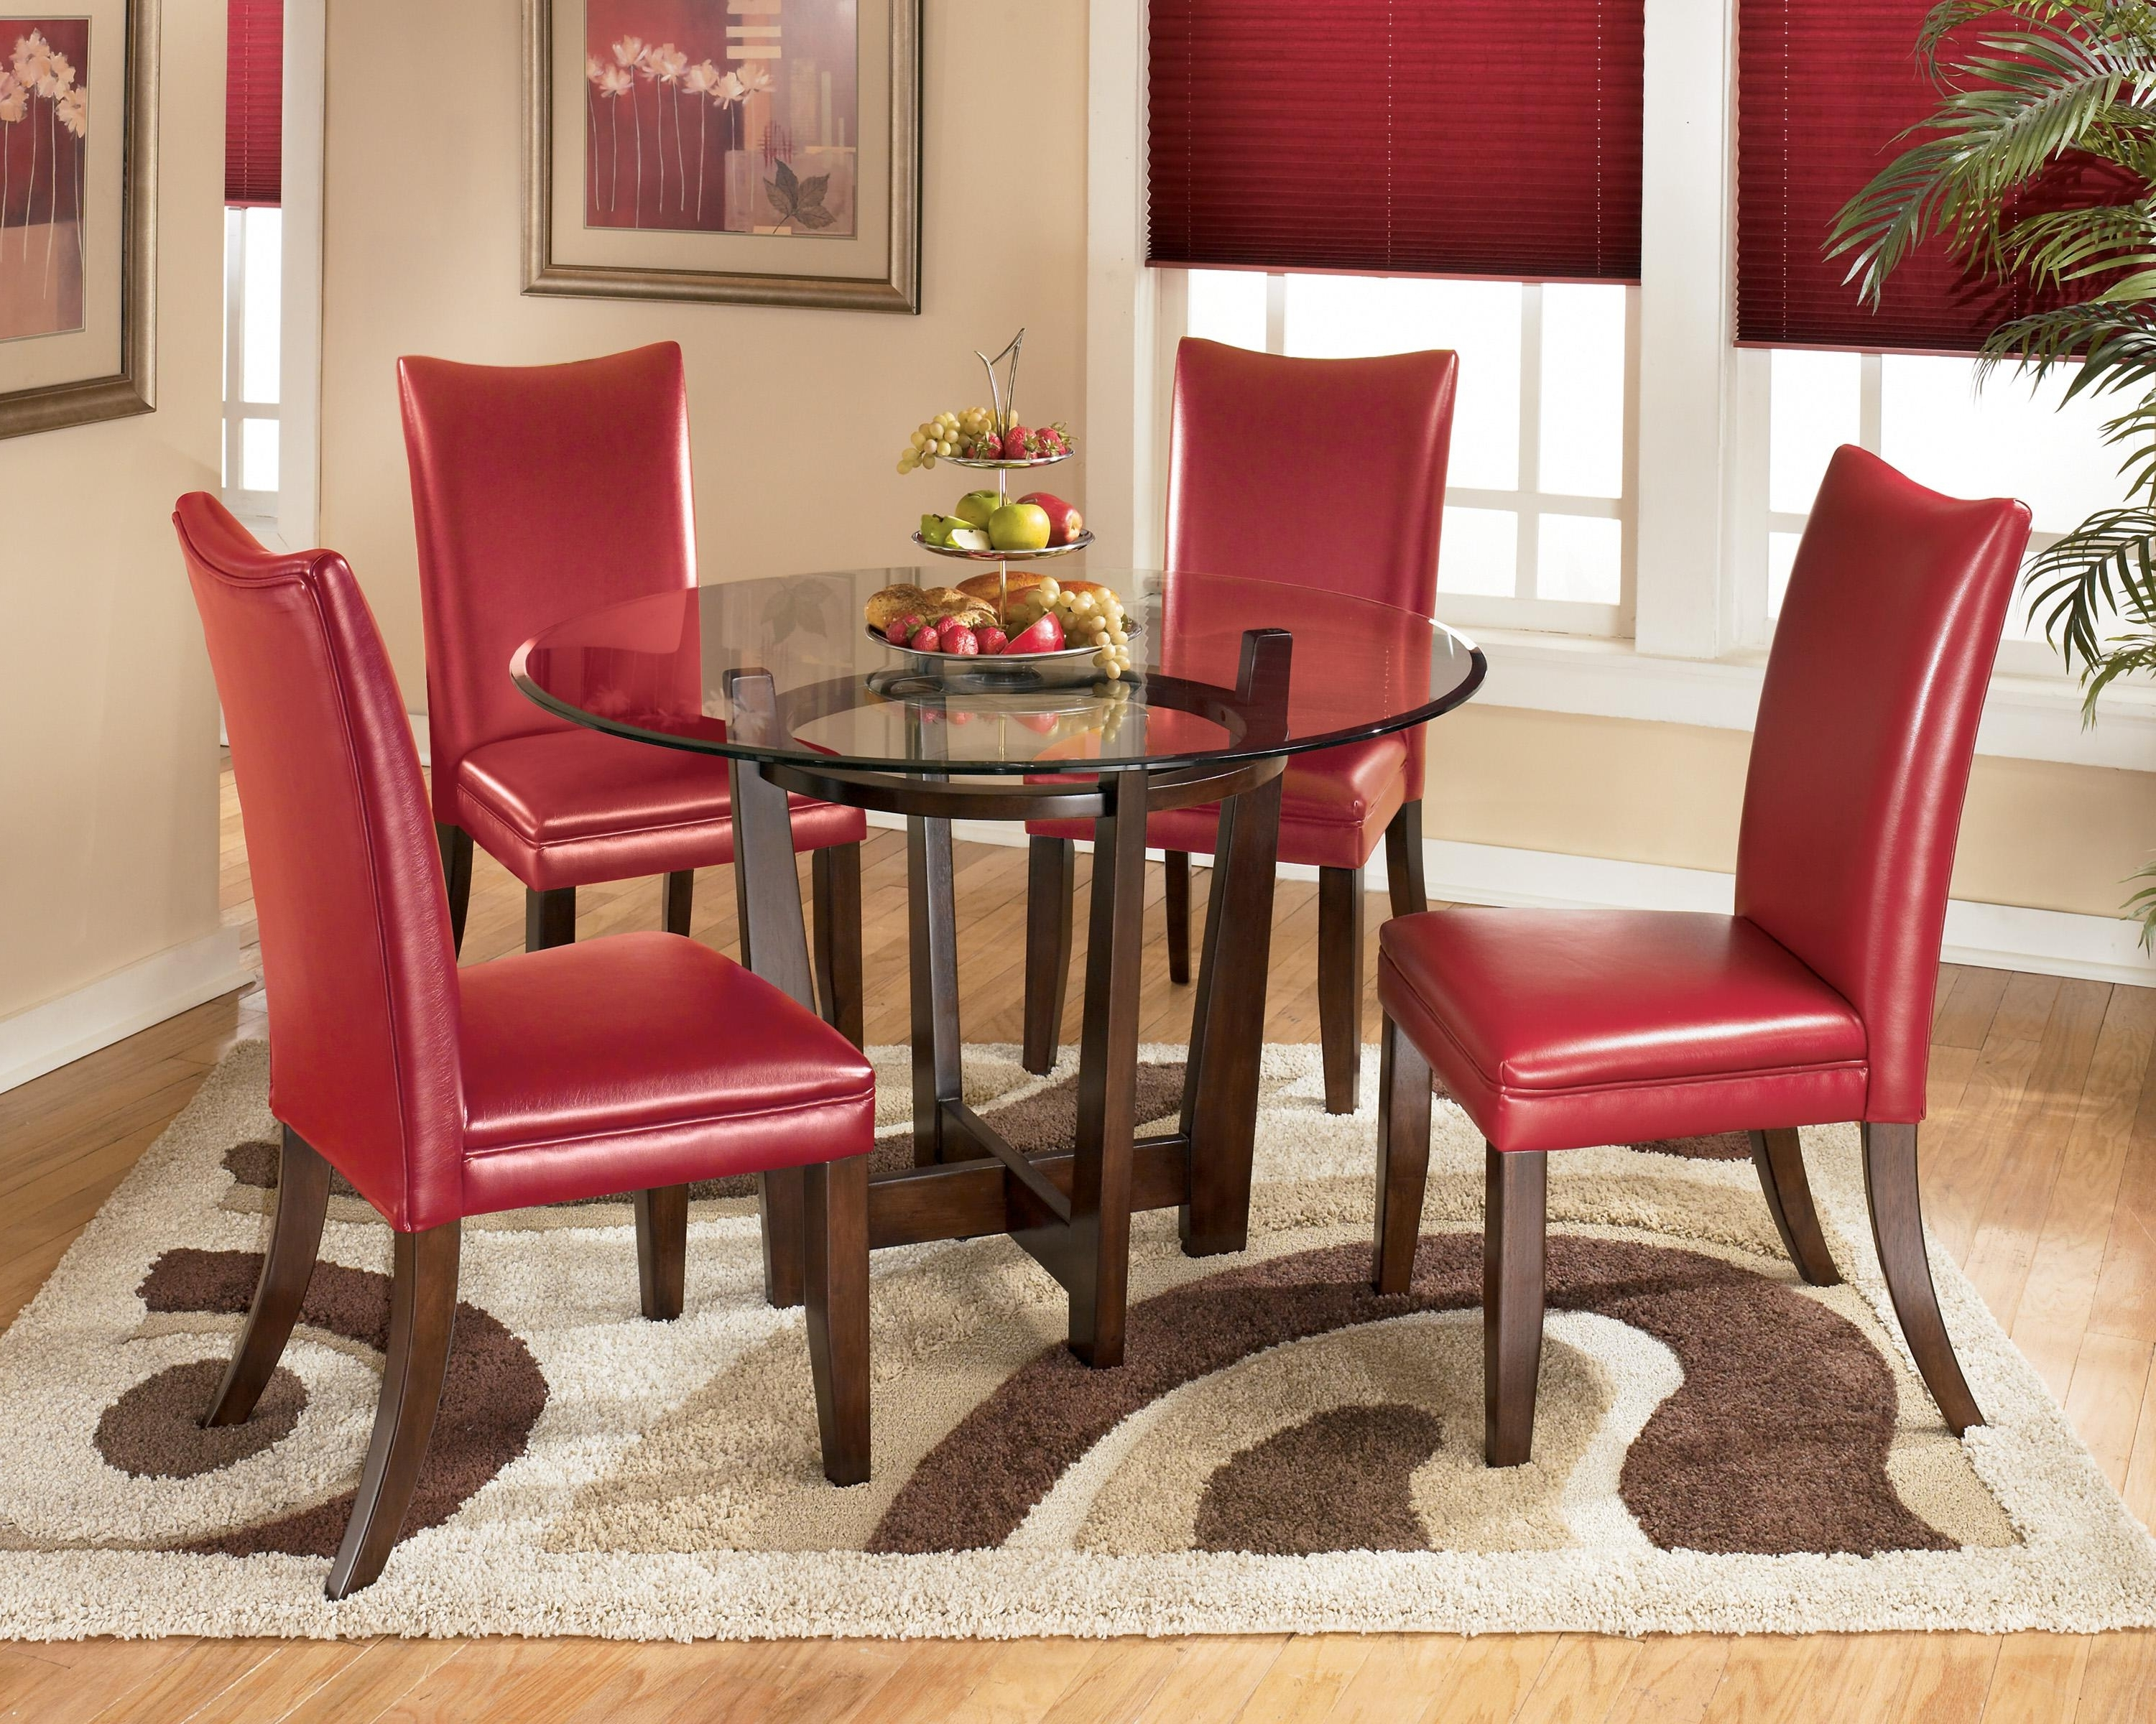 Most Popular 5 Piece Round Dining Table Set With Red Chairssignature Design Intended For Red Dining Tables And Chairs (View 8 of 25)